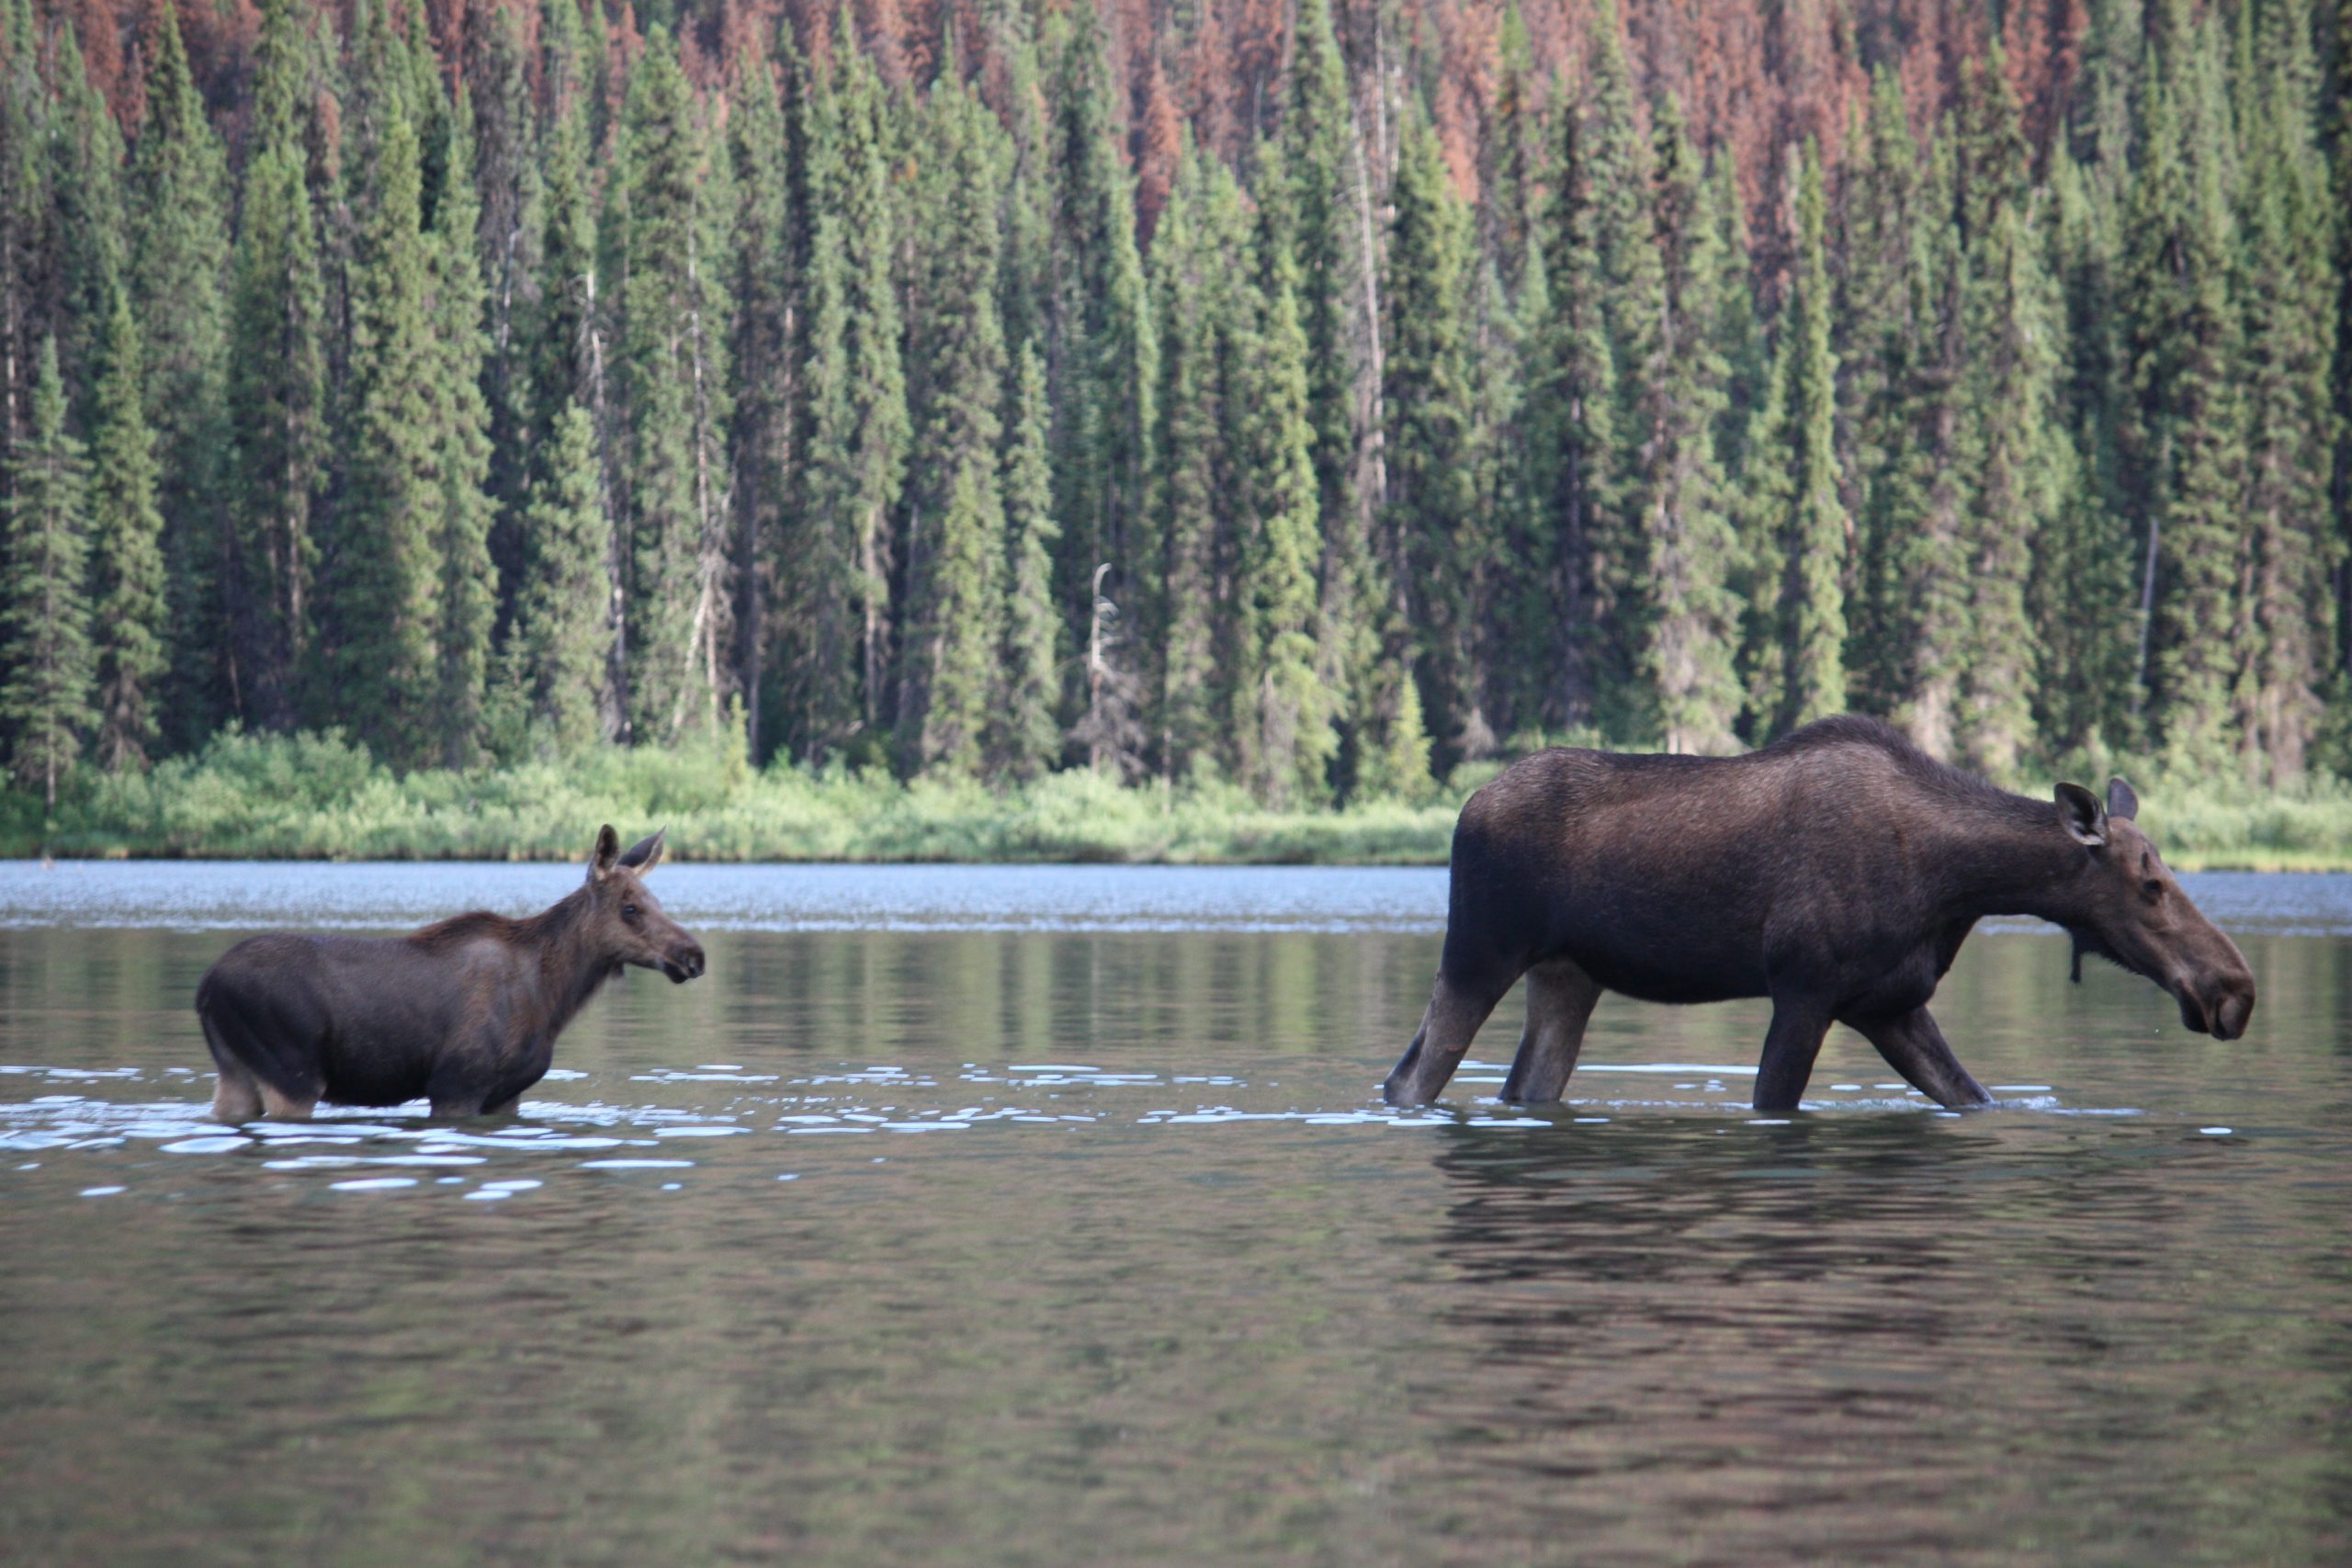 Minister defends moose hunt increases as science-led